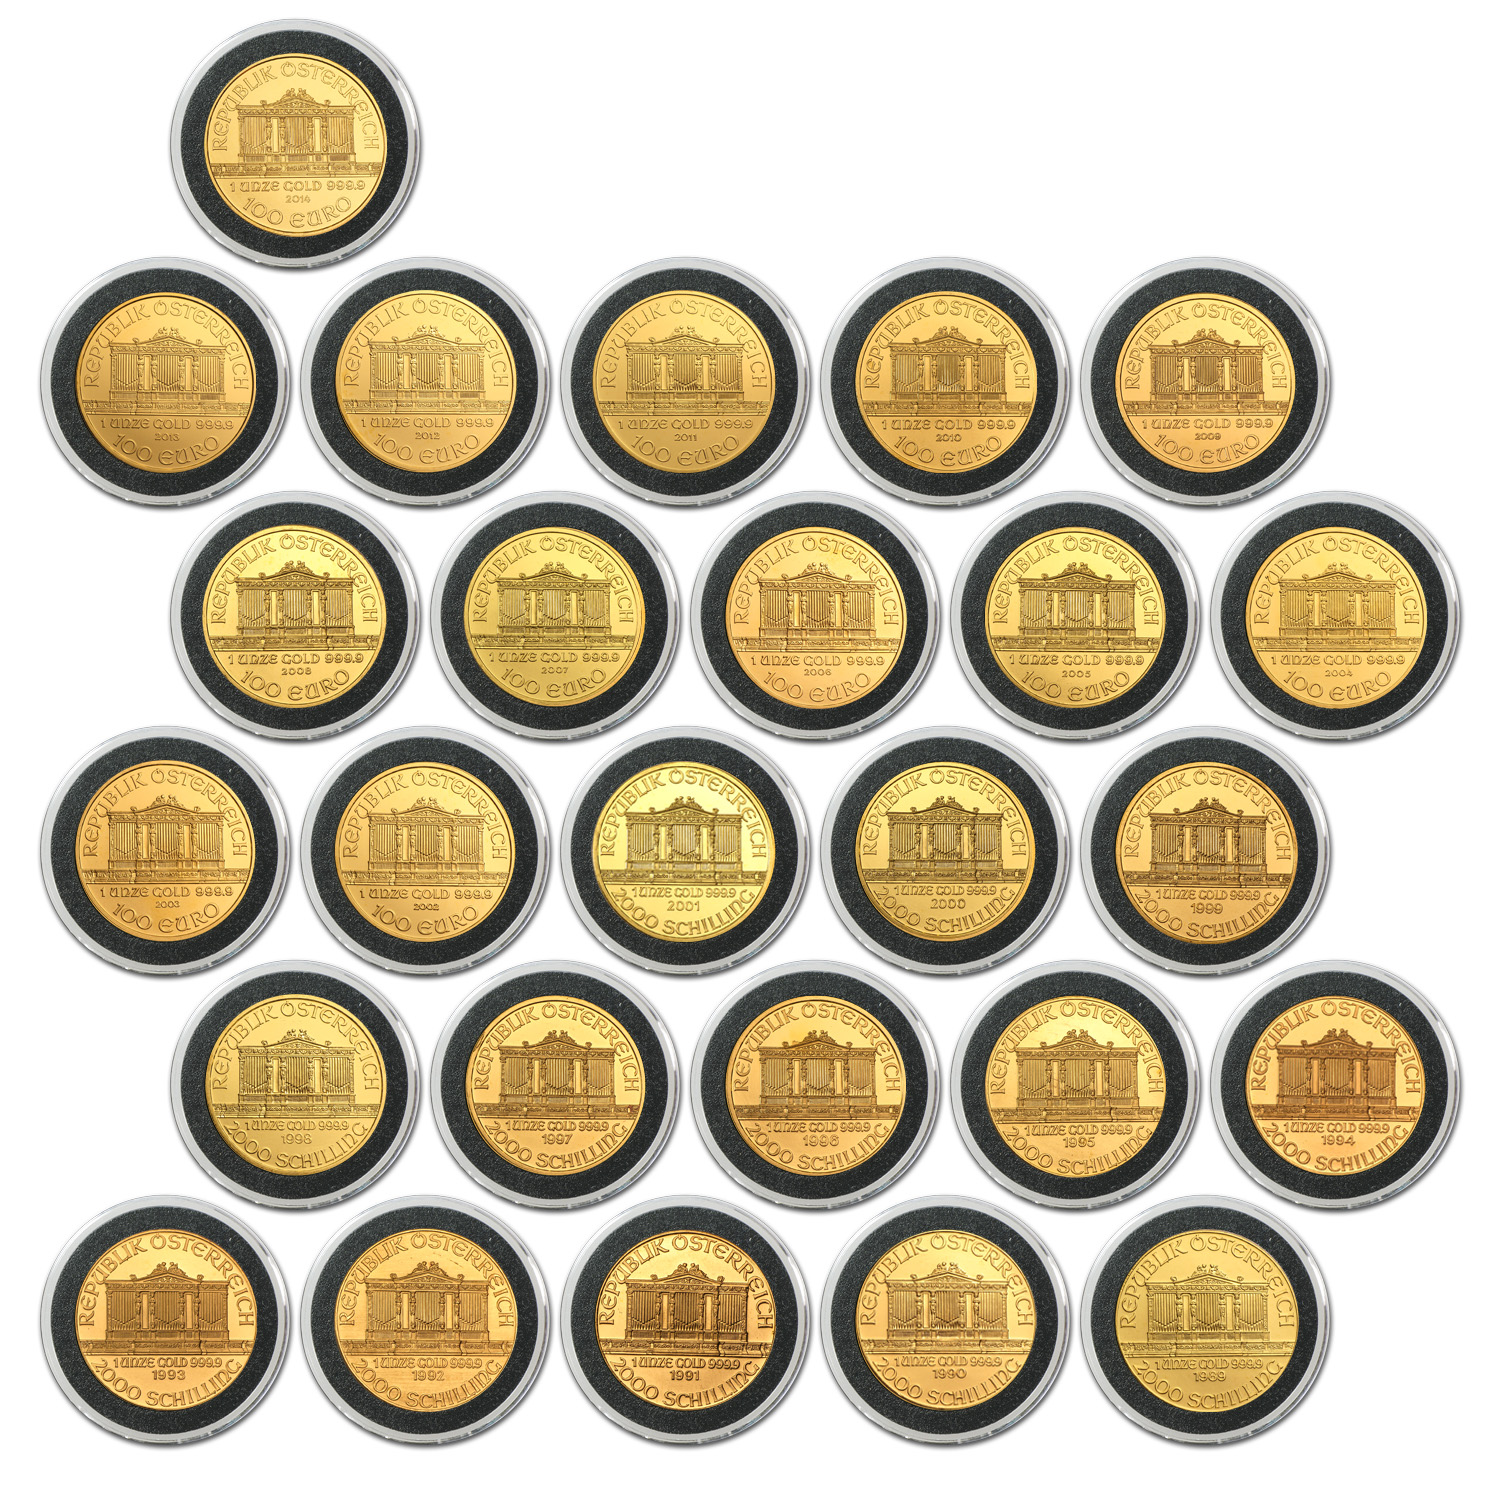 1989-2014 1 oz Gold Philharmonic Complete 26 Coin Collection